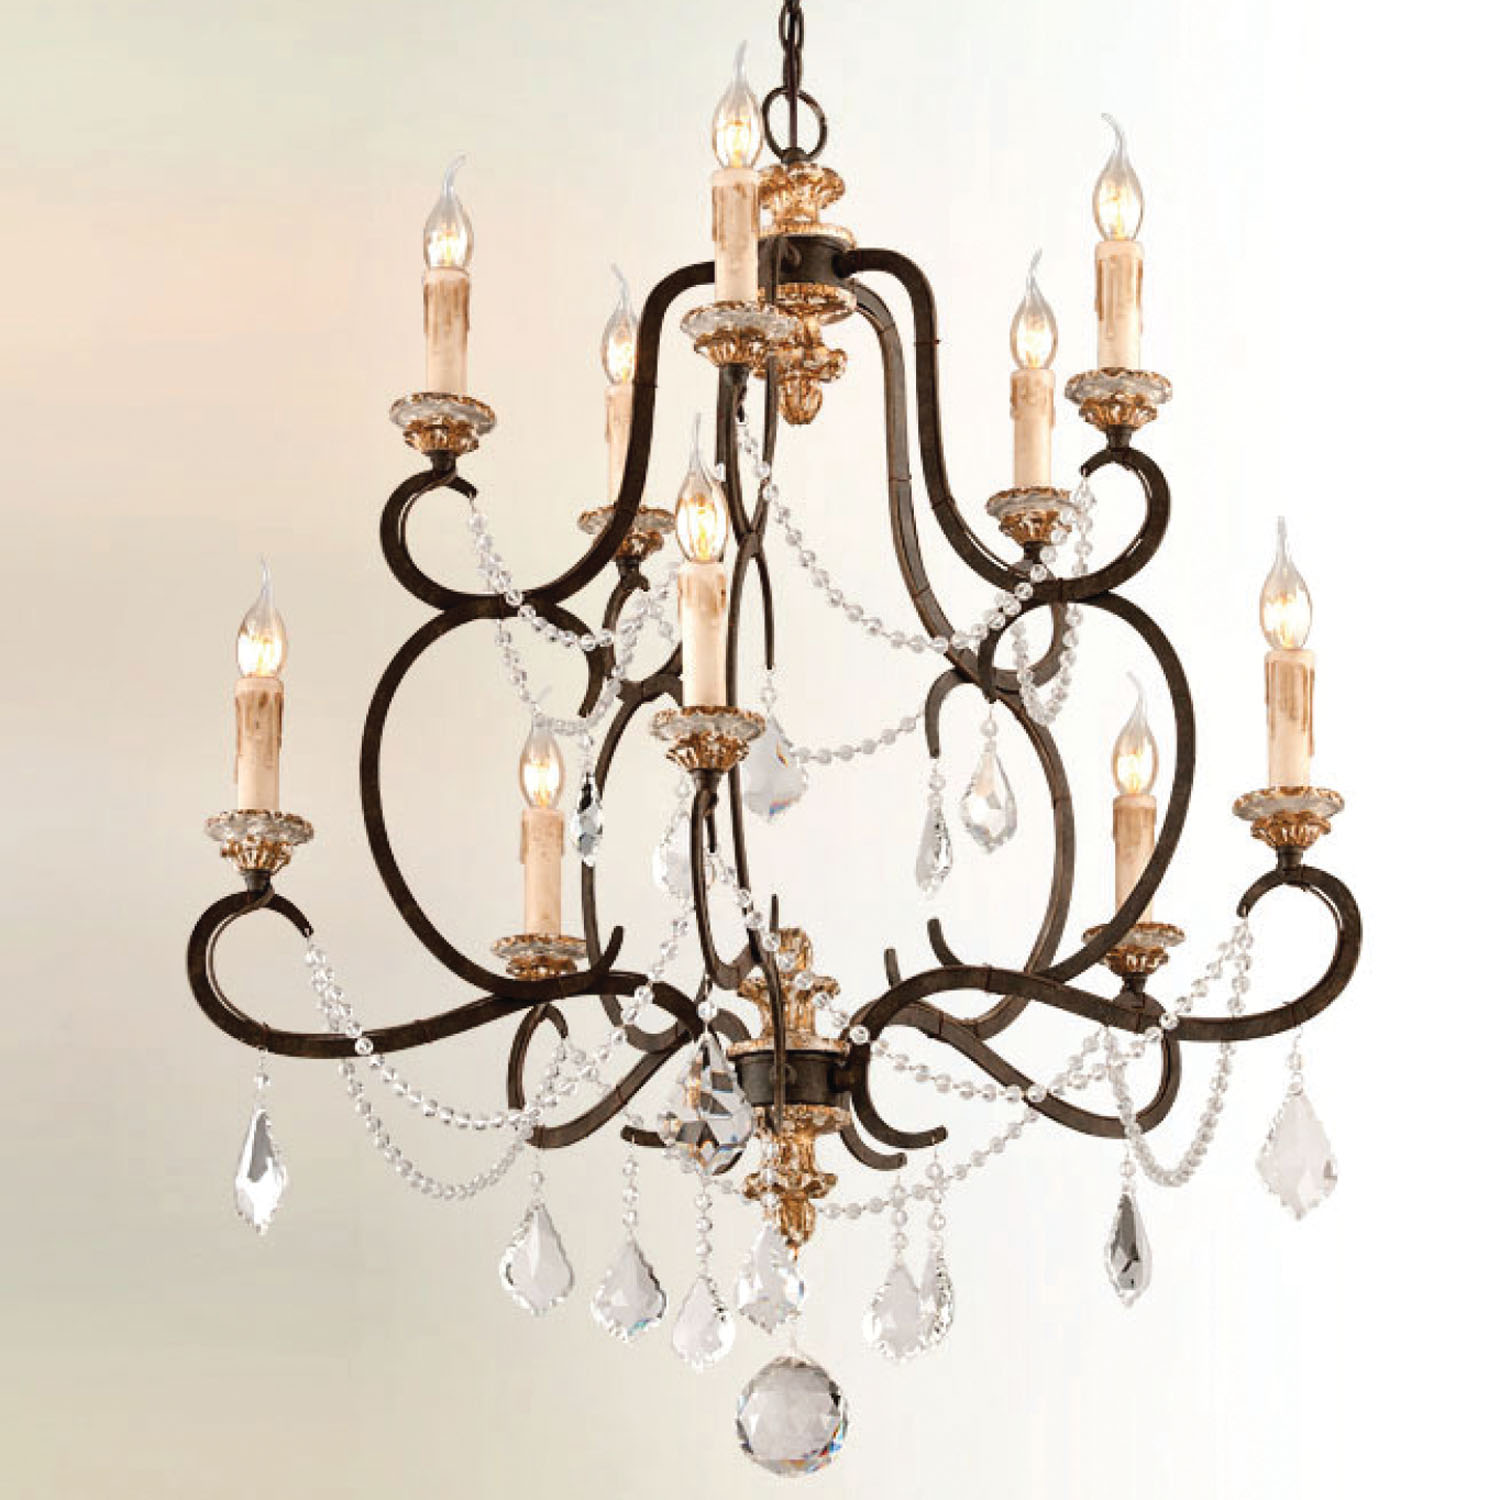 Bordeaux Chandelier1500.jpg